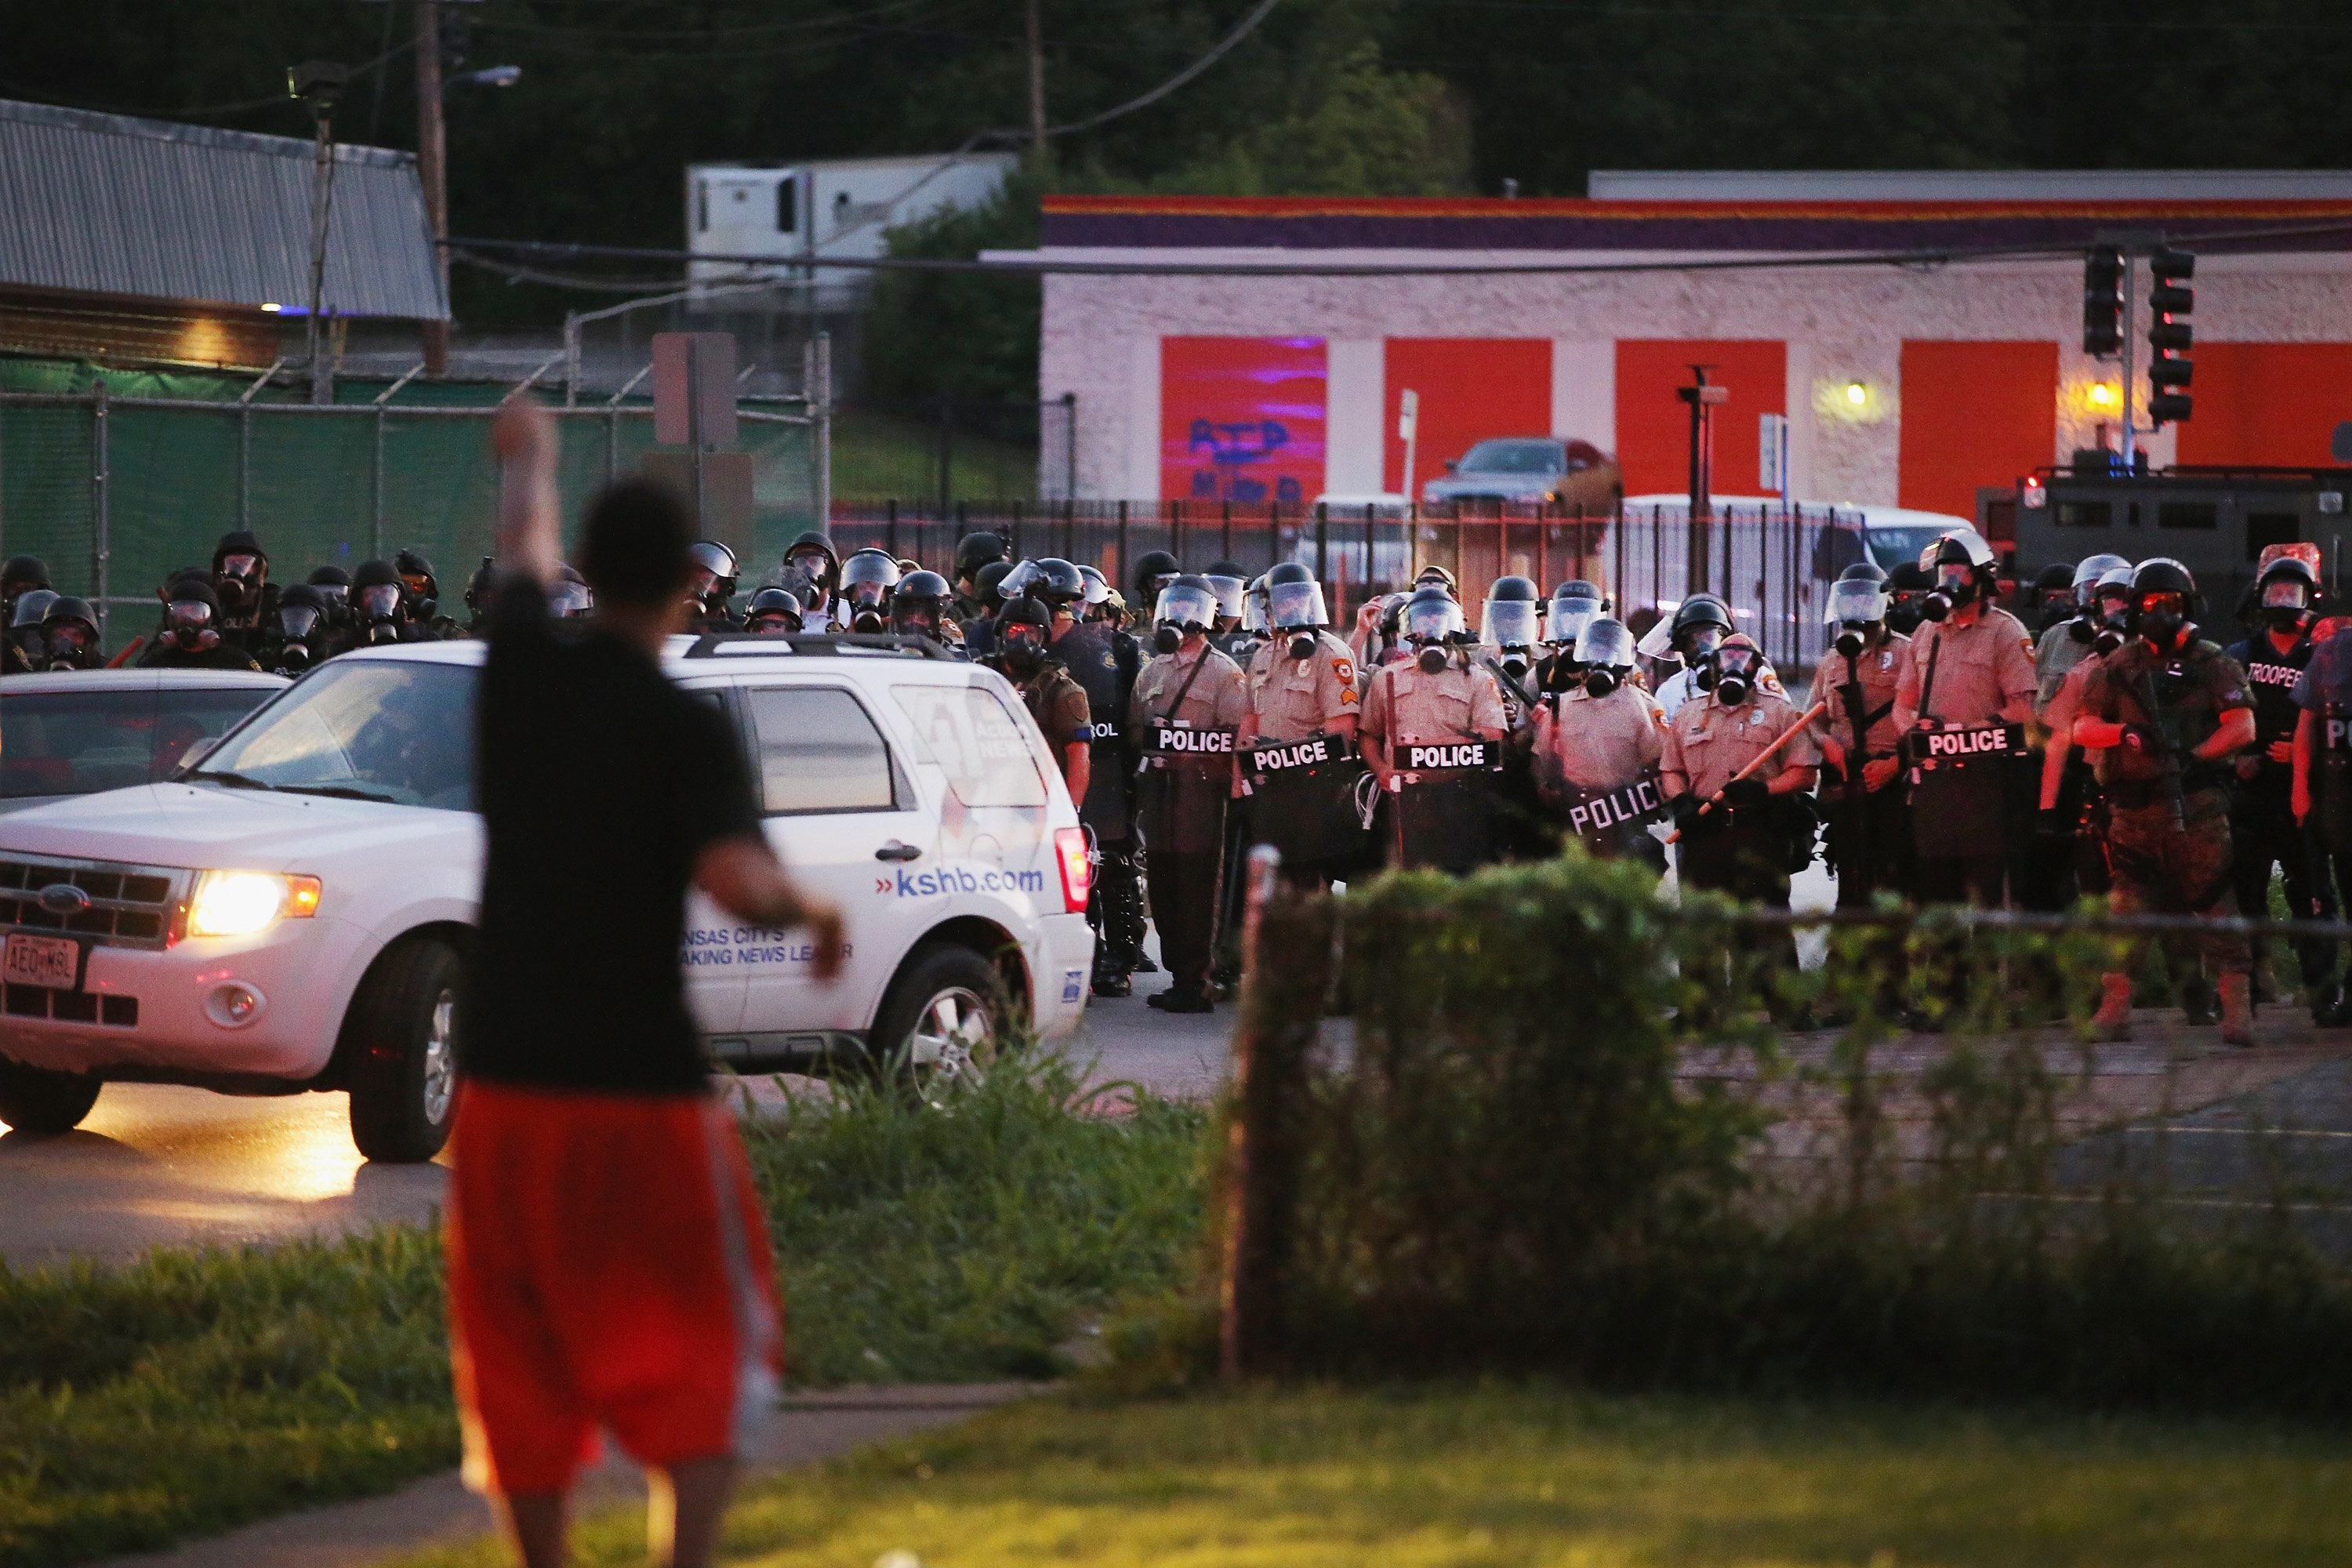 Riot police force protestors from the business district into nearby neighborhoods in Ferguson, Mo. on Aug. 11, 2014.